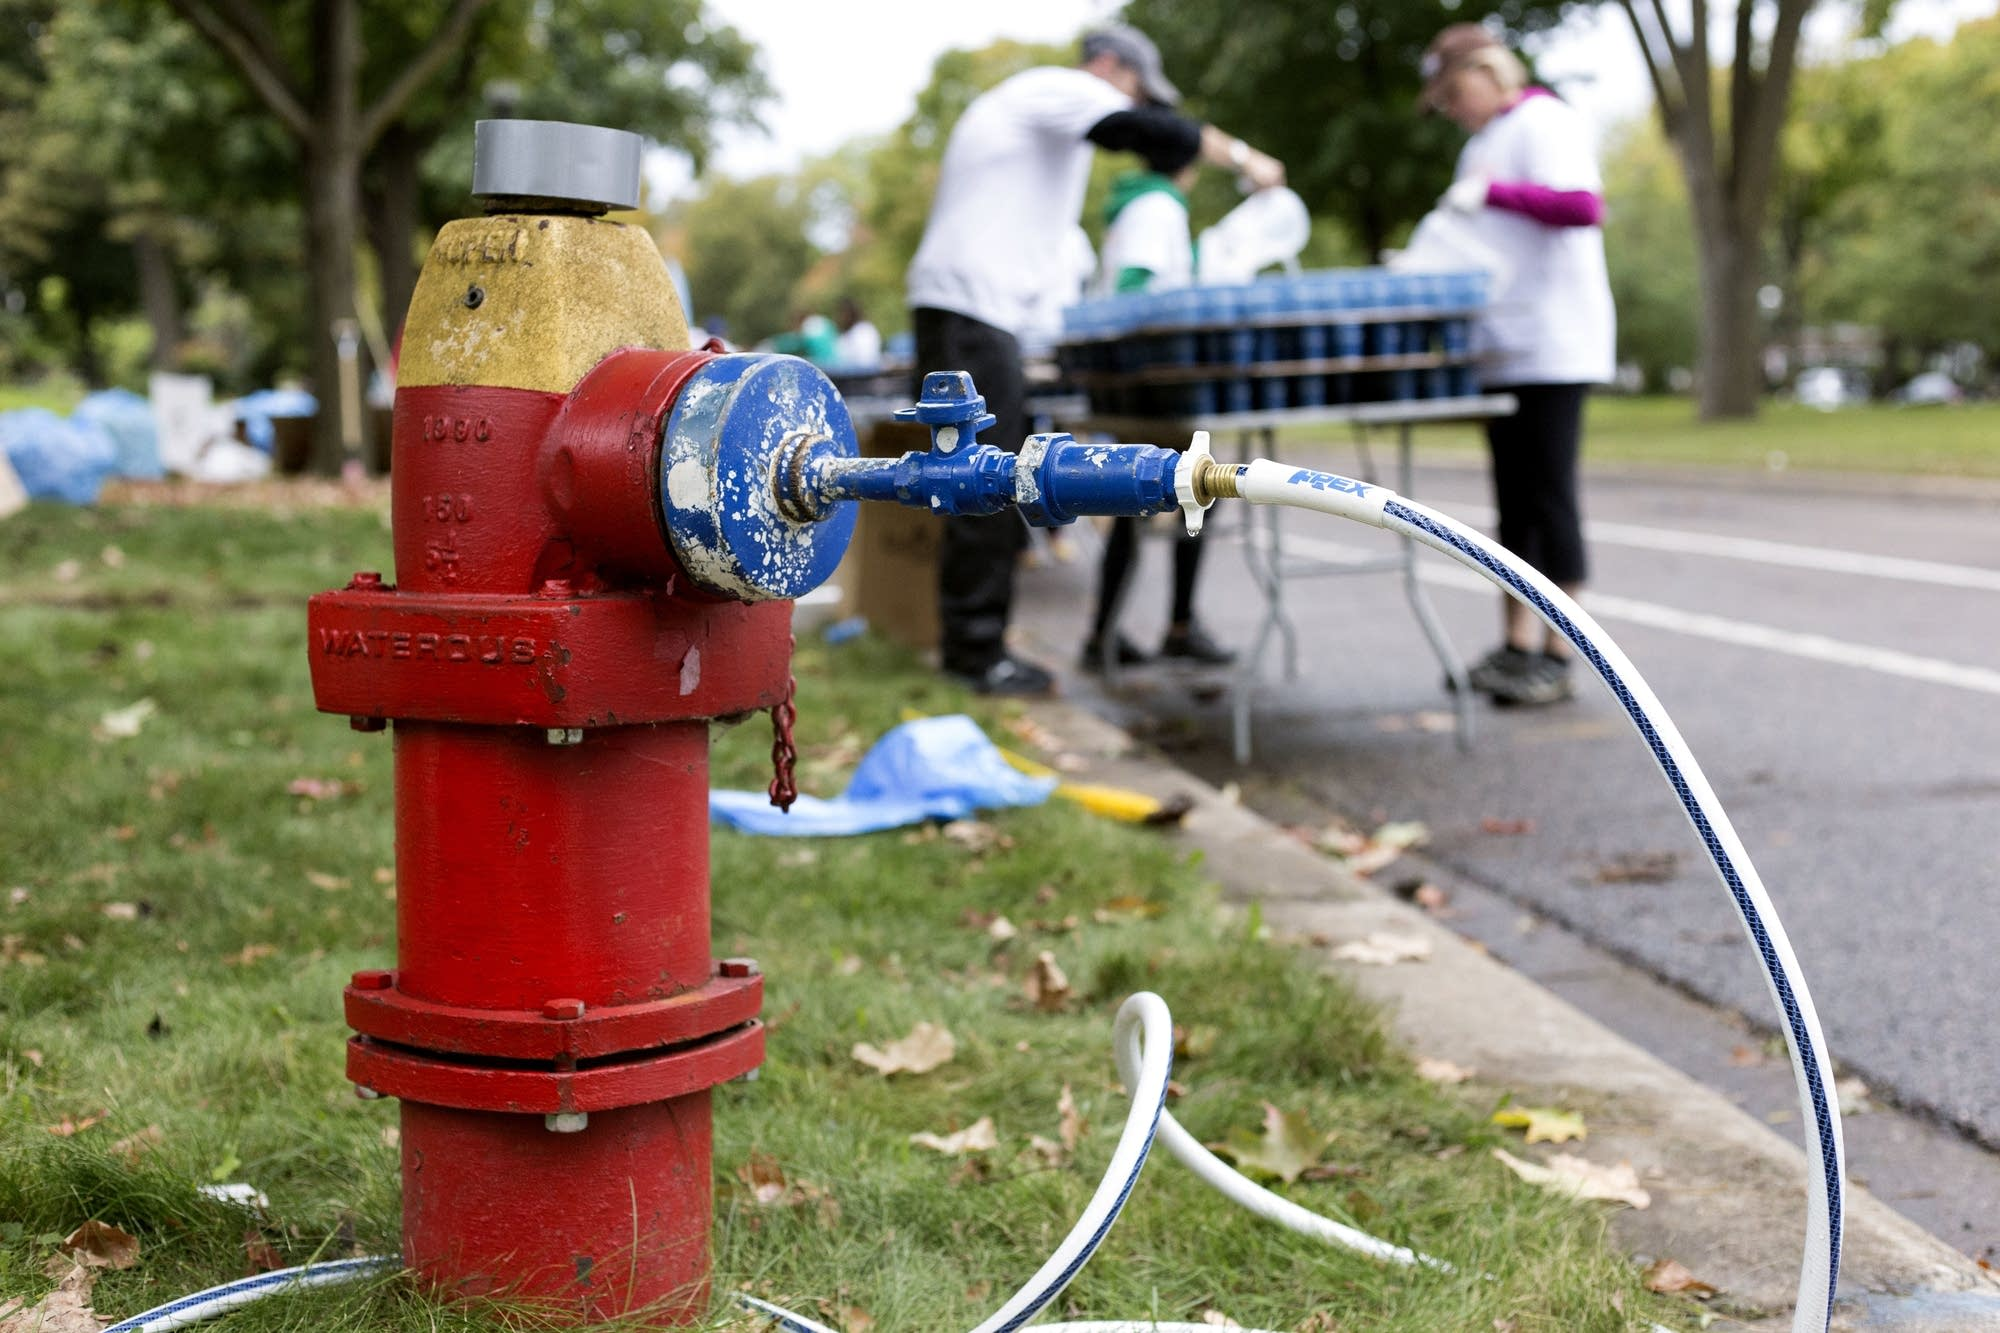 Volunteers filled water cups for marathon participants from fire hydrants.